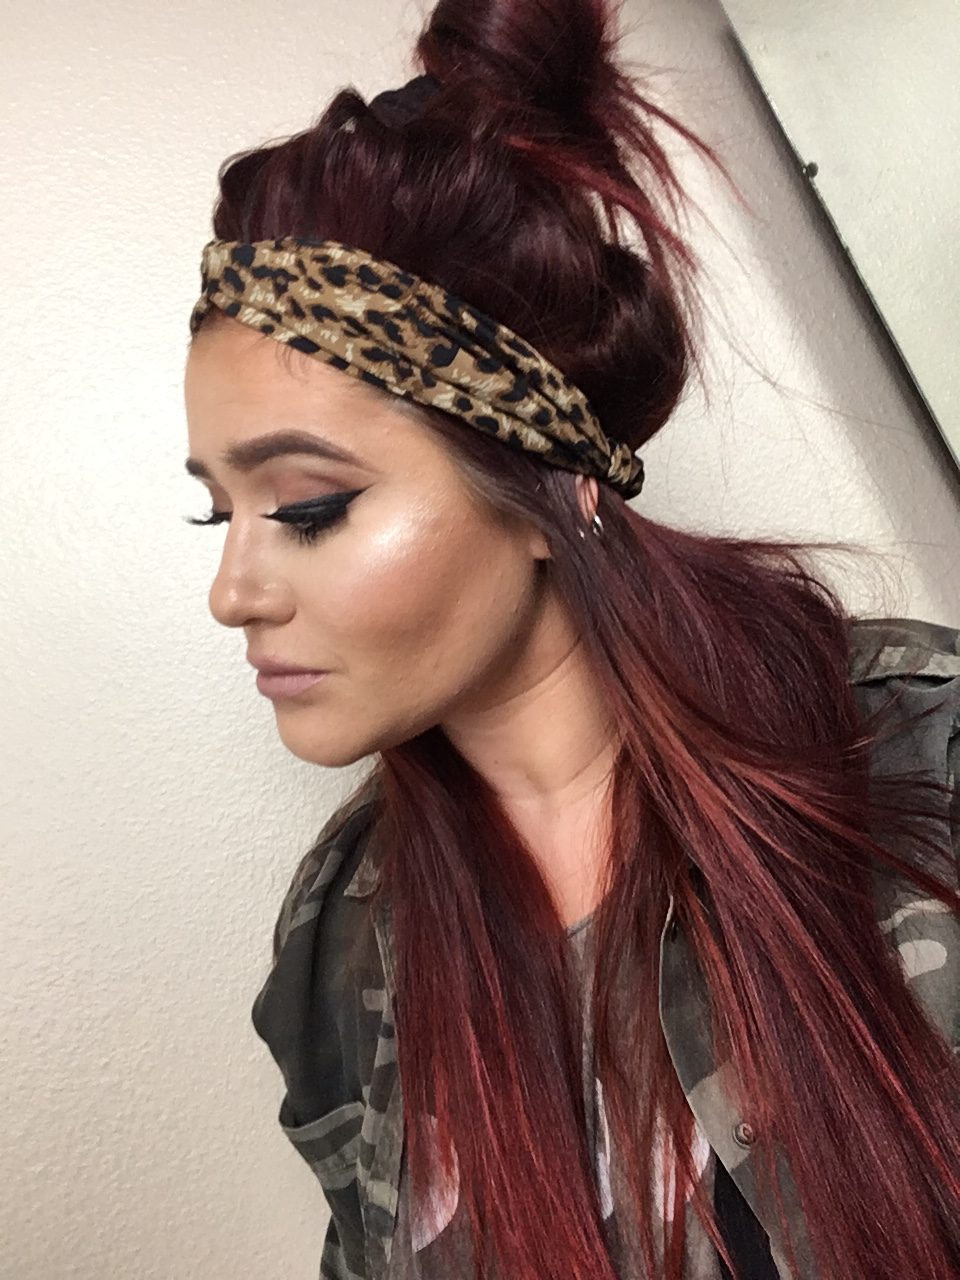 Chelsea Houska Inspired Simple Makeup